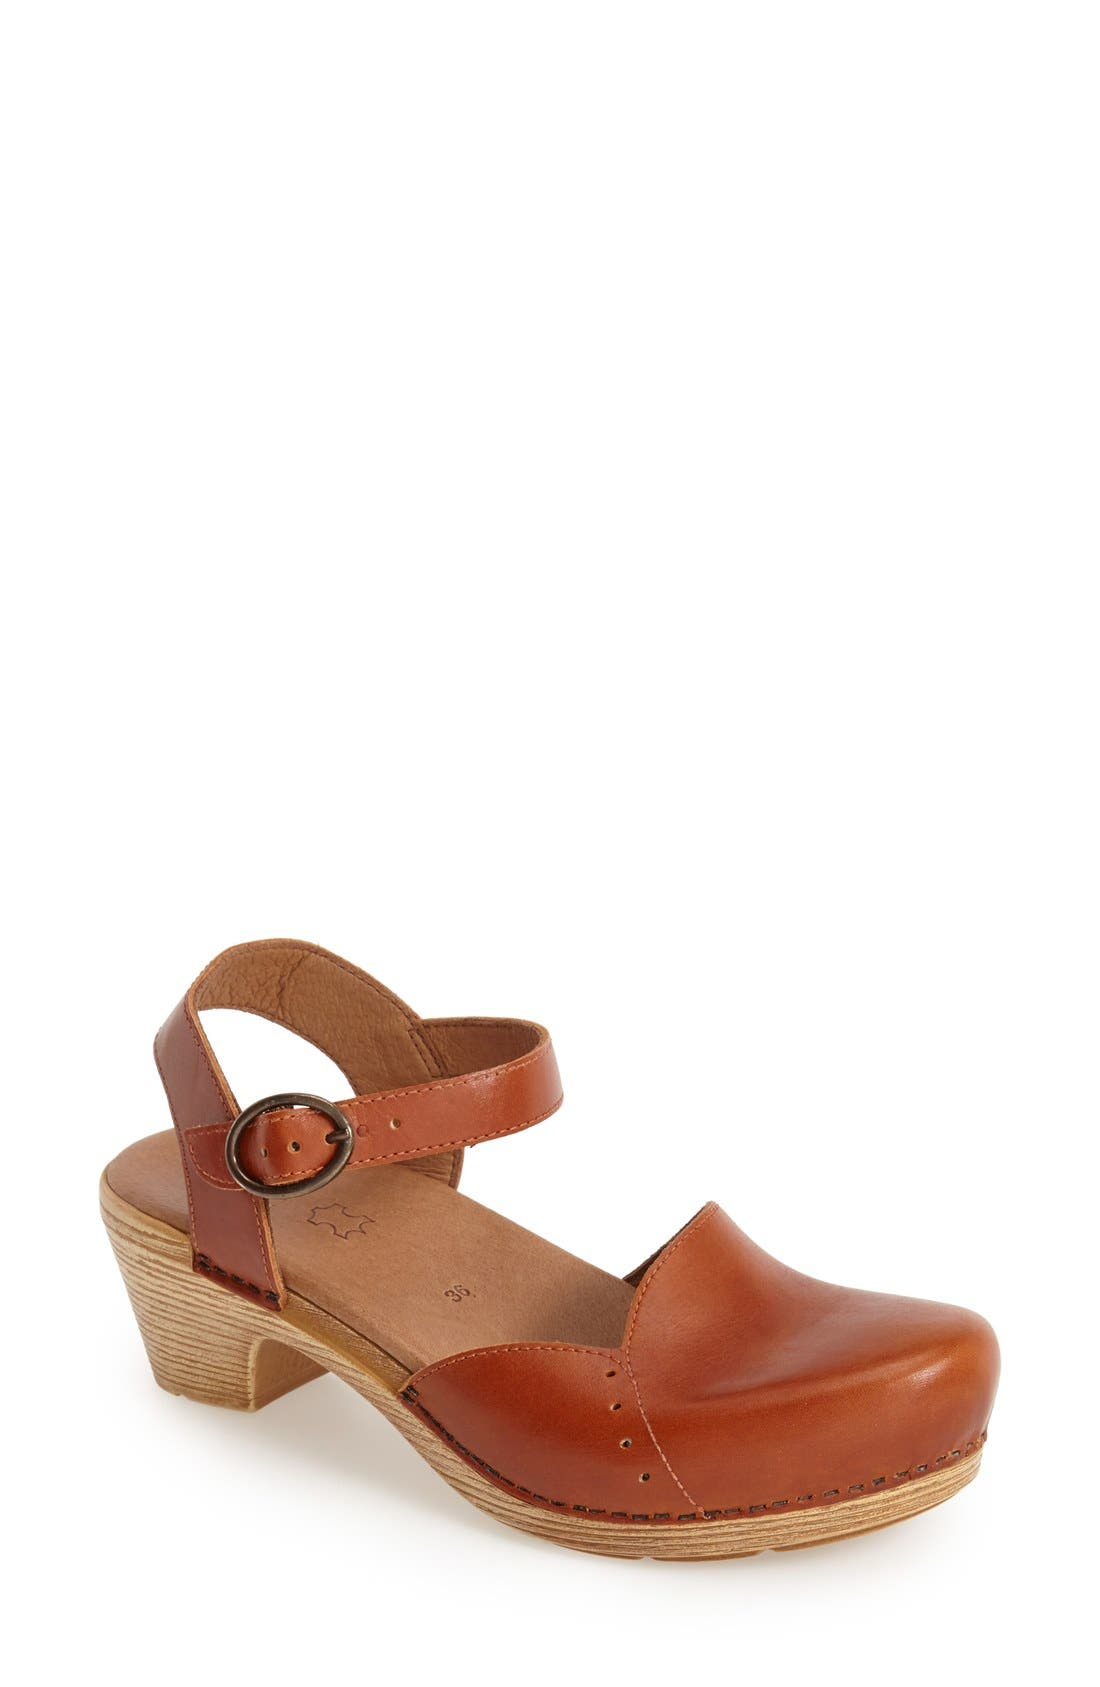 'Maisie' Ankle Strap Leather Pump,                             Main thumbnail 1, color,                             Toffee